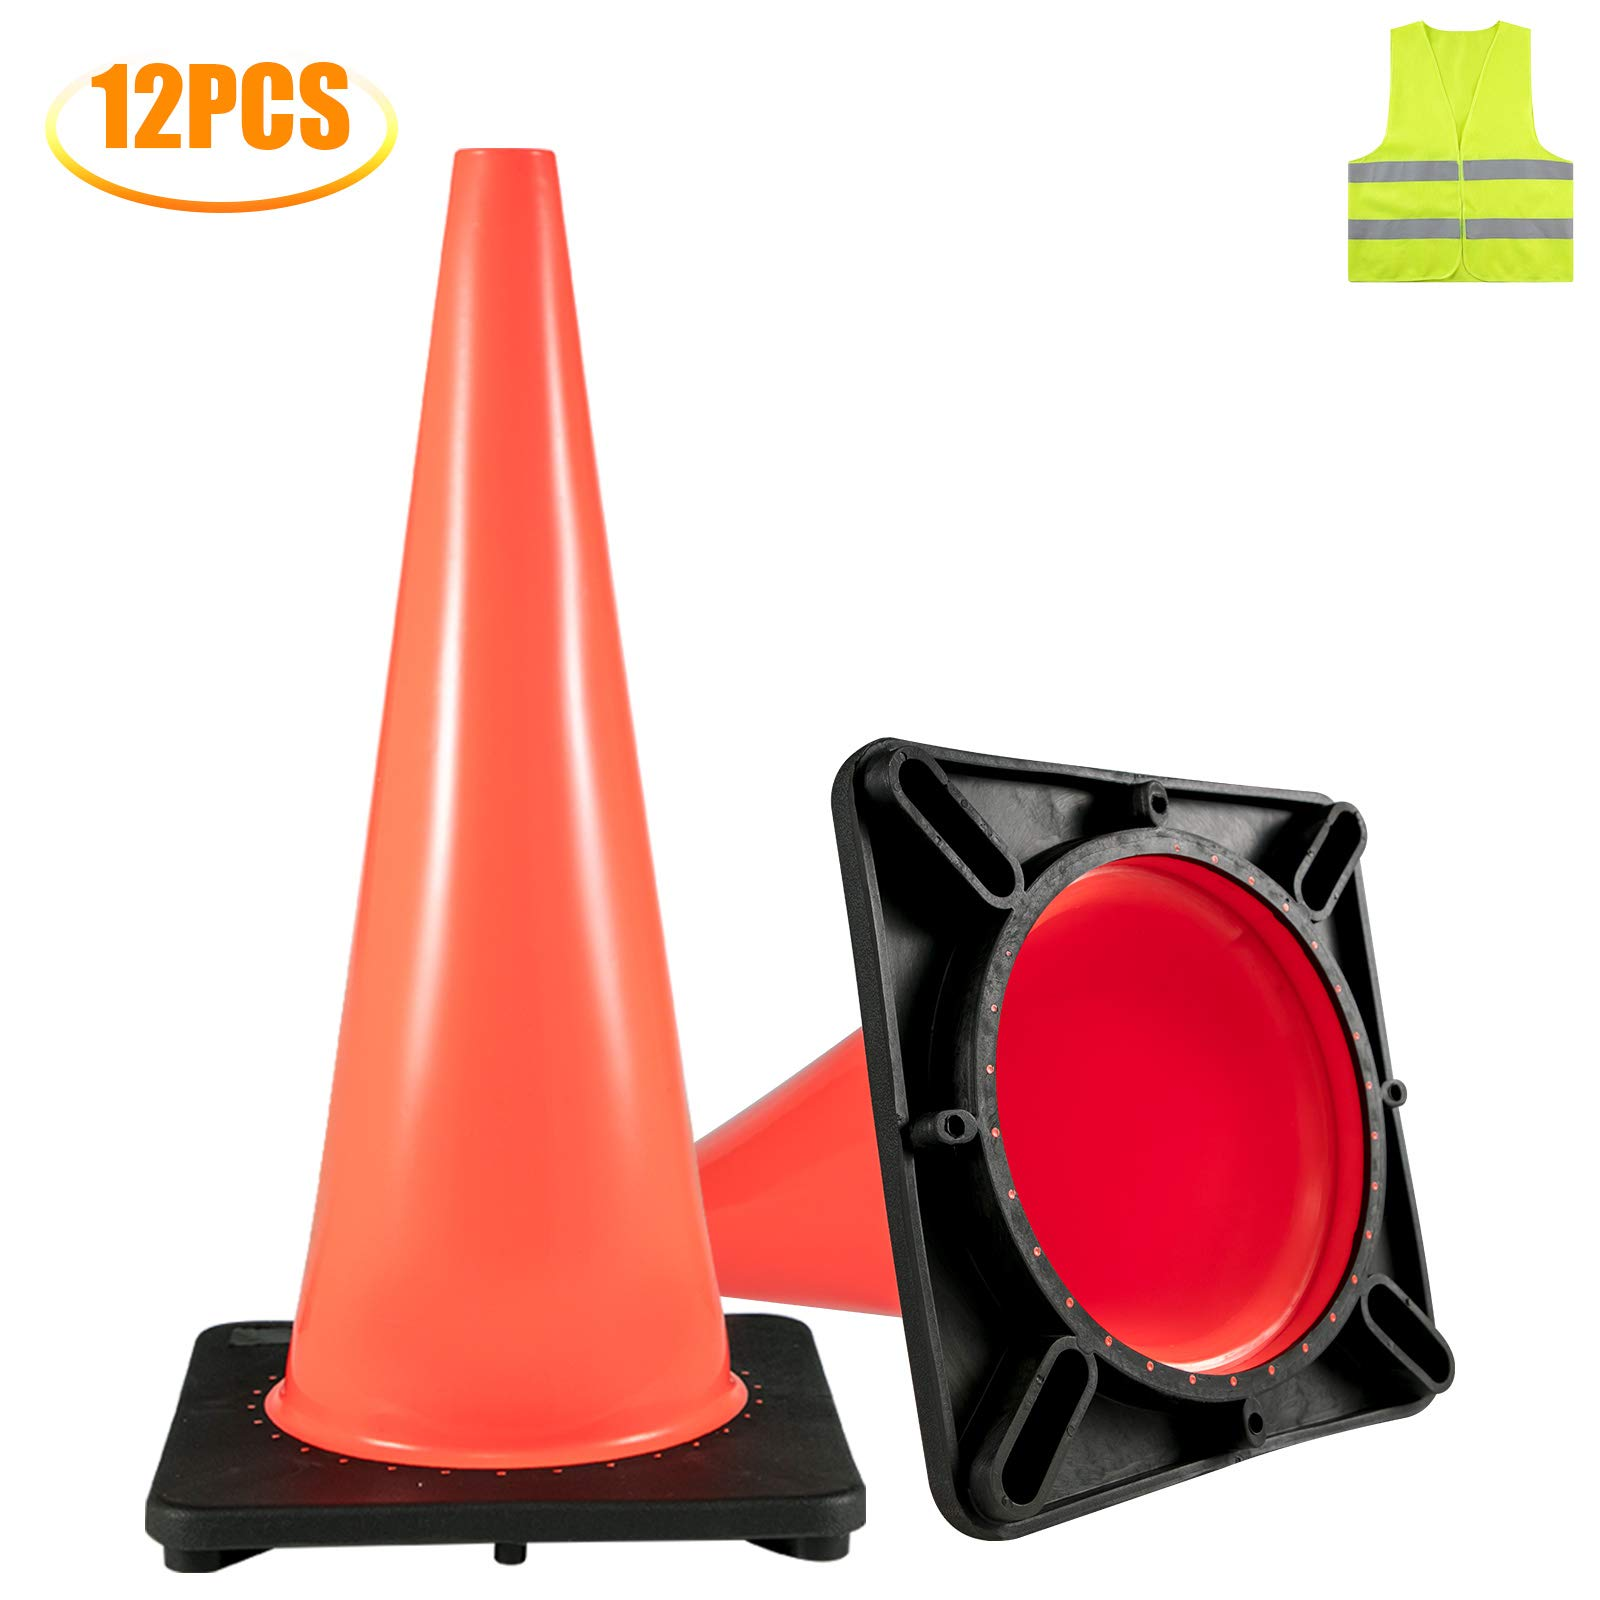 BestEquip 12 Traffic Cones 18'' Road Packing Safety Cones PVC Orange Traffic Safety Cone with Black Base Soccer Training Cones by BestEquip